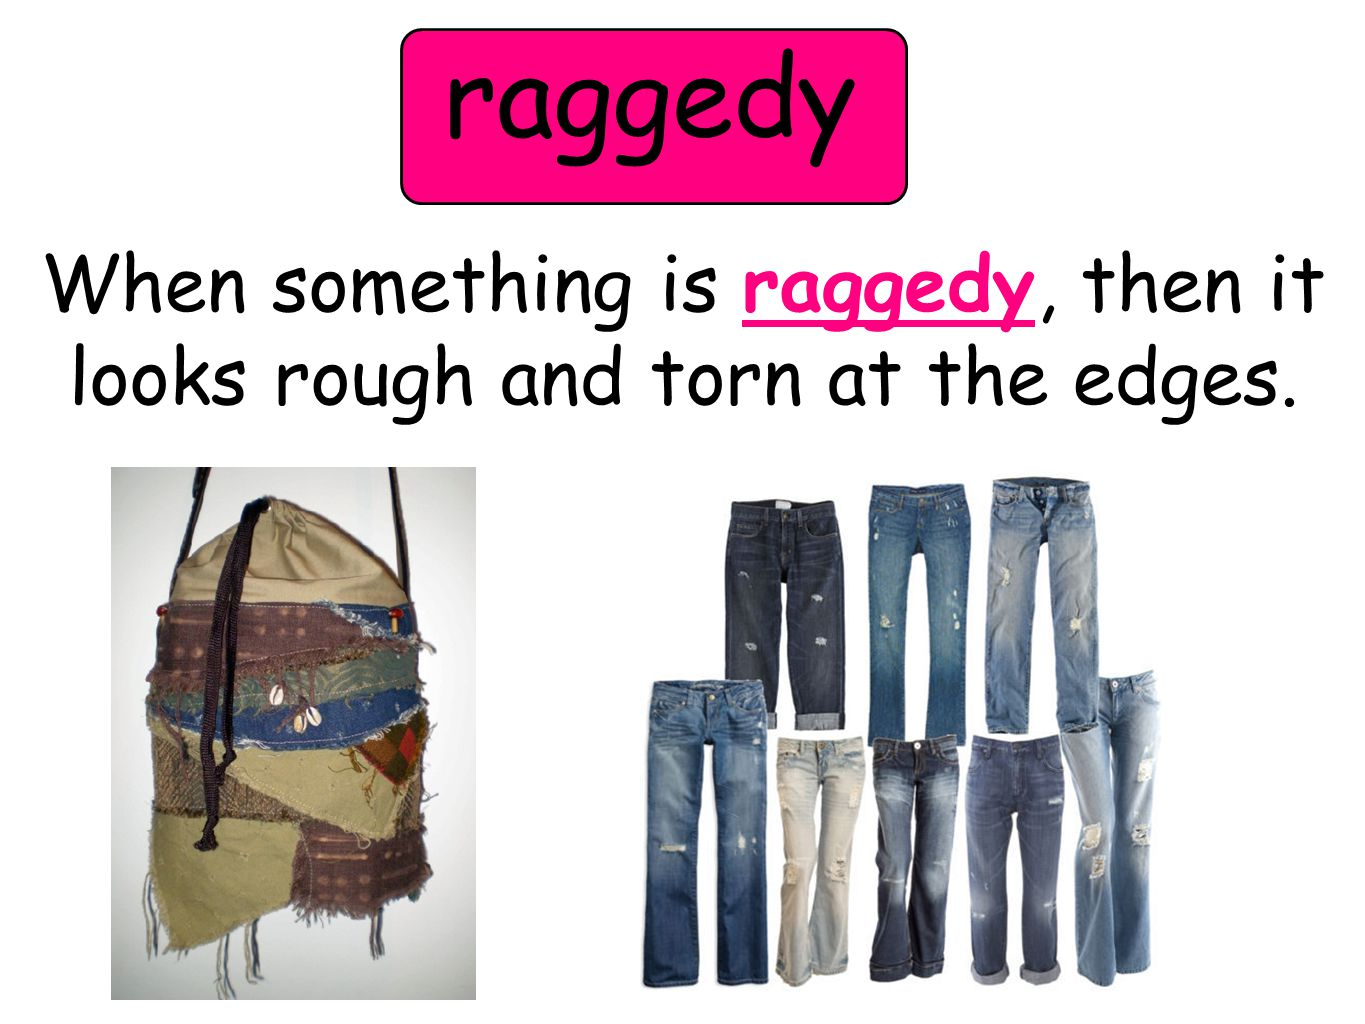 raggedy When something is raggedy, then it looks rough and torn at the edges.